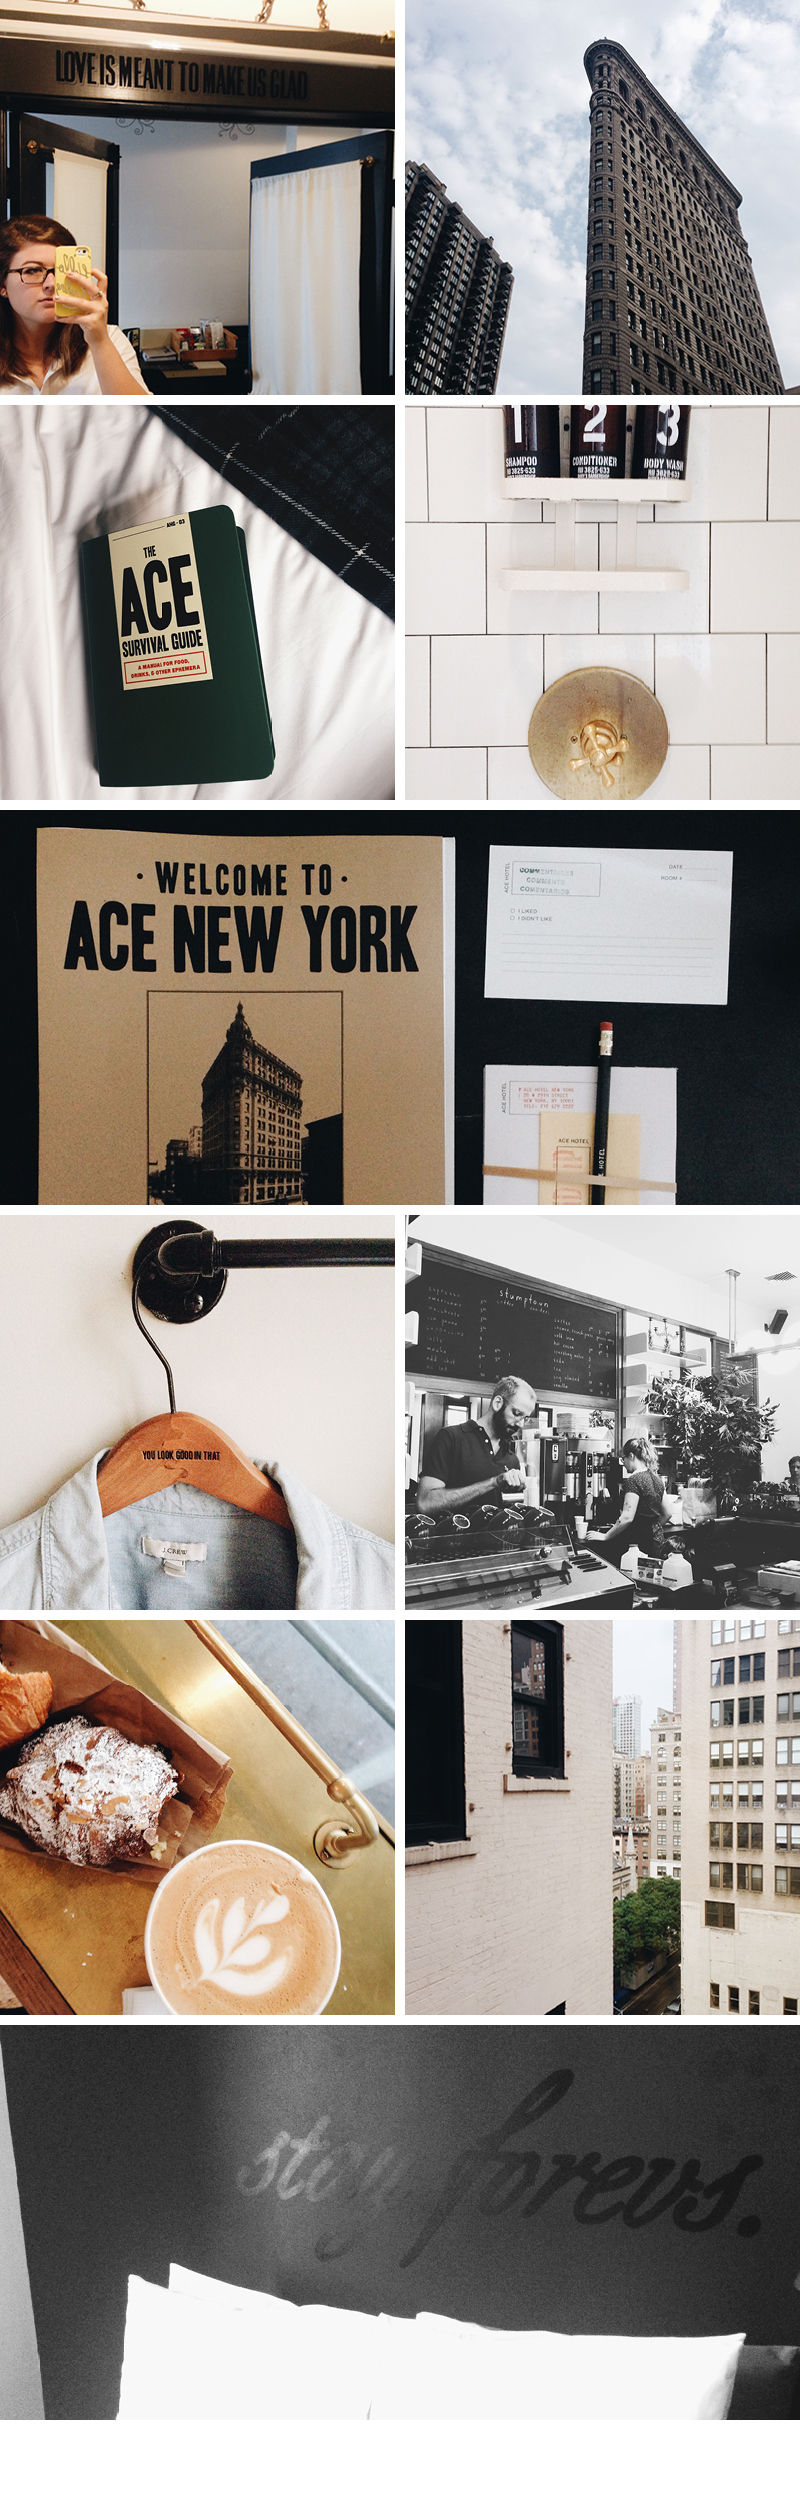 ace hotel nyc images